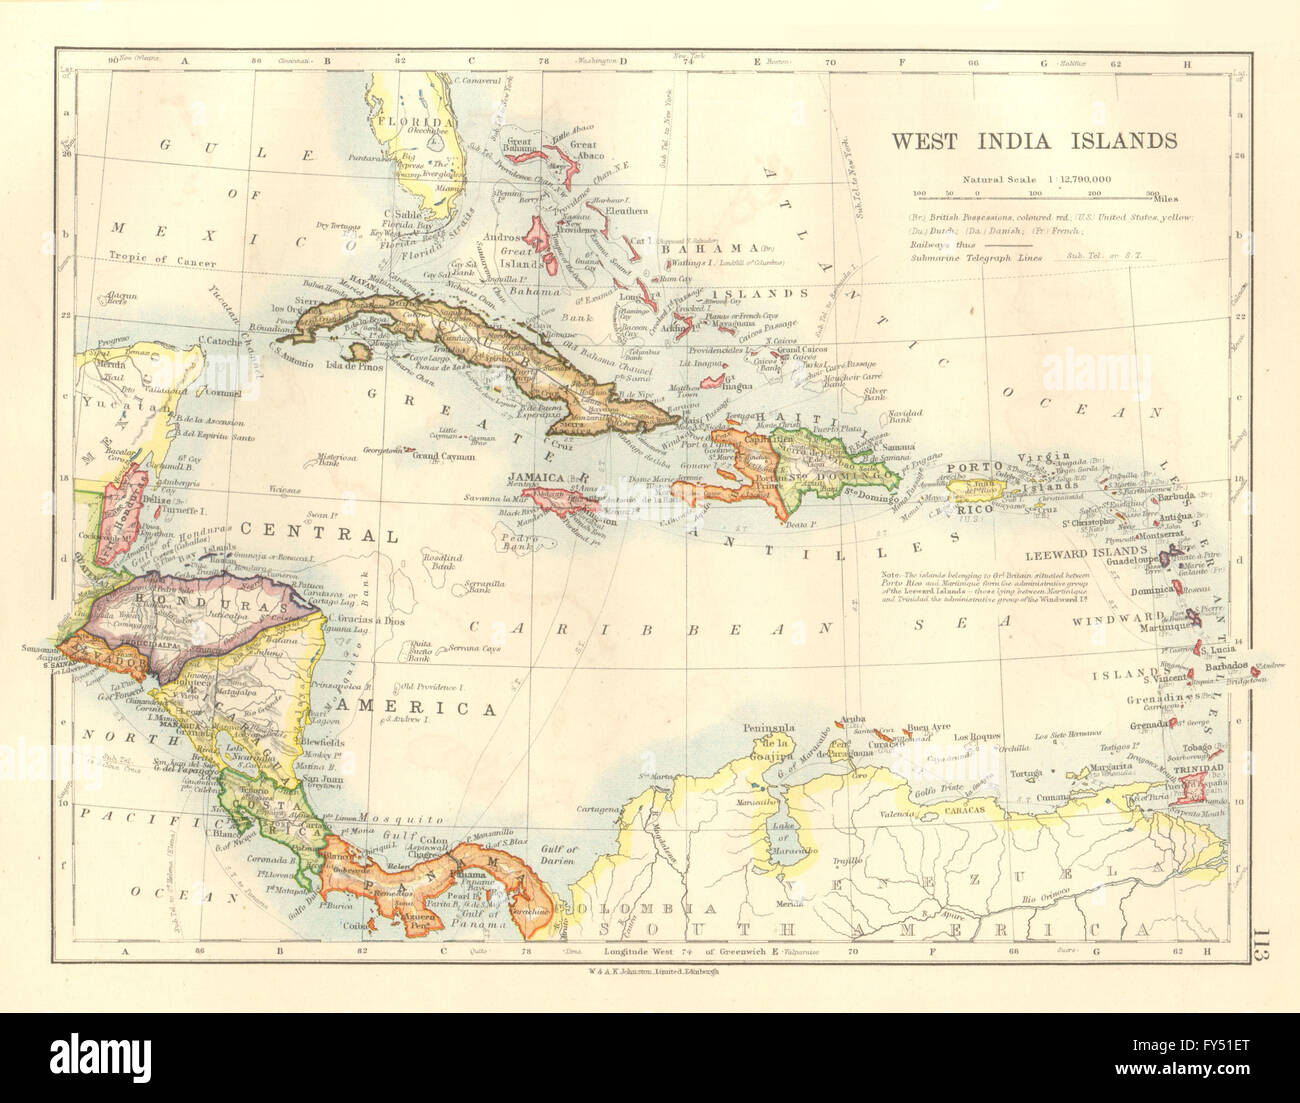 Caribbean Bahamas Windward Leeward Islands JOHNSTON 1920 Map